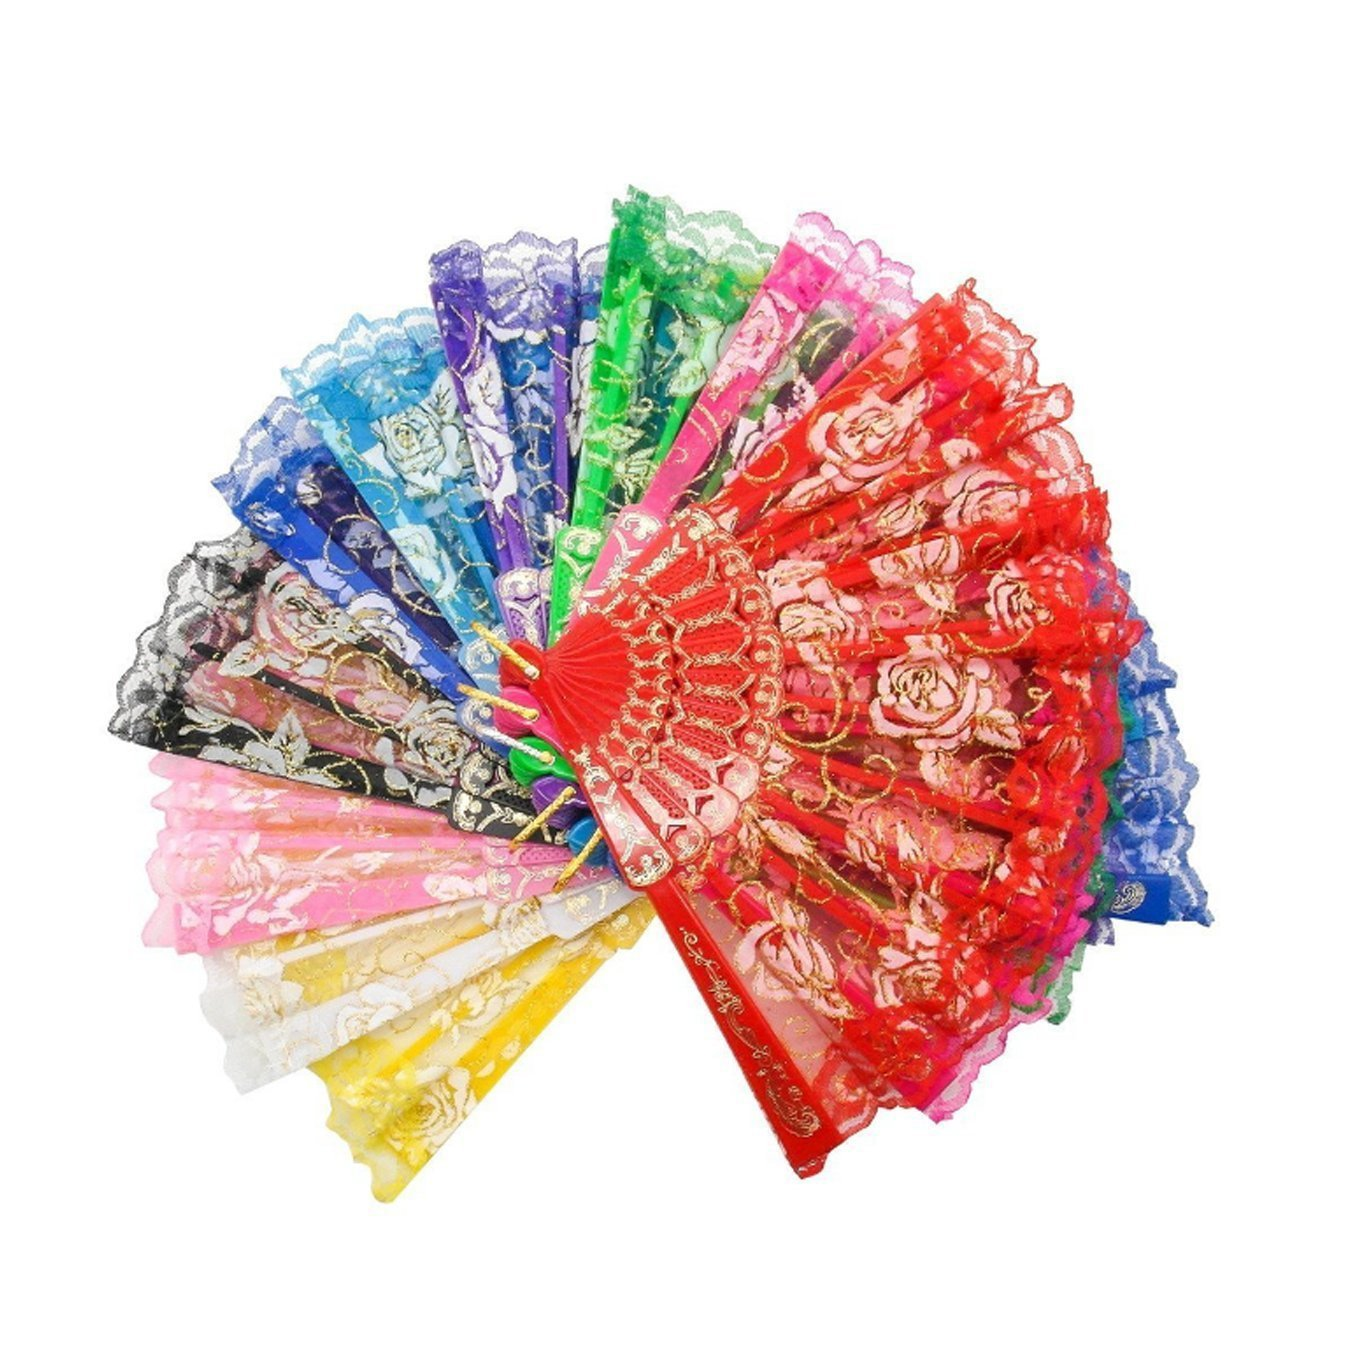 YOHO BUY Elegant Vintage Retro Flower Rose Lace Handheld Chinese Folding Fan For Dancing Ball Parties Ladies (10 Color)